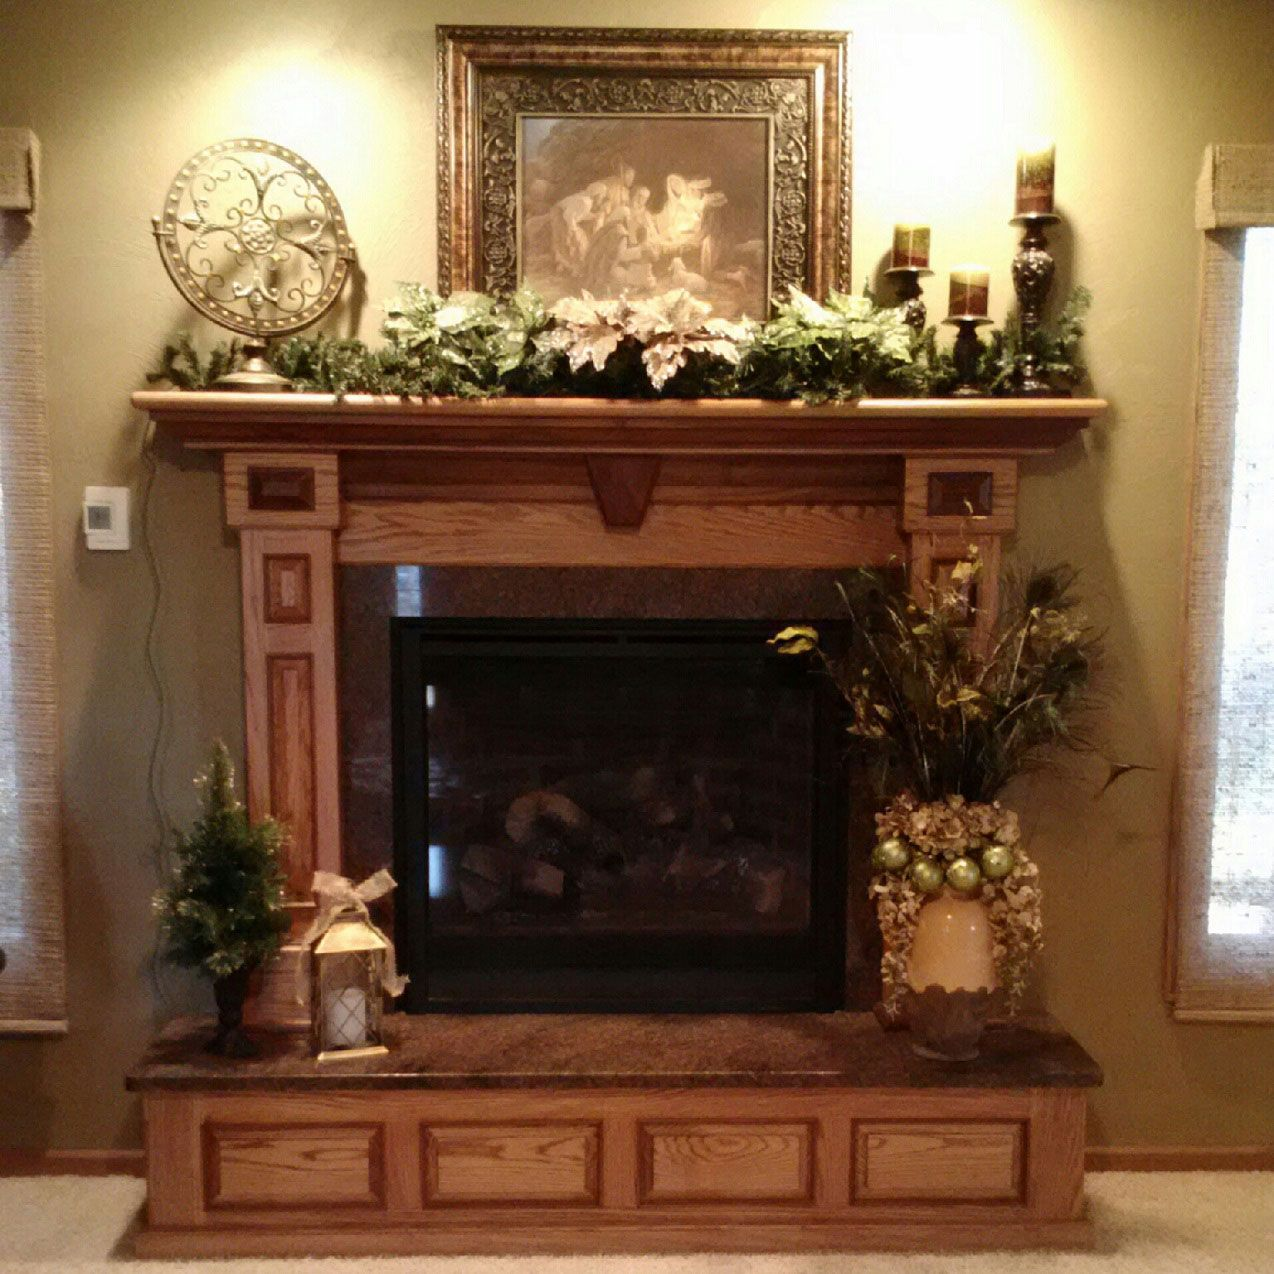 Unique Fireplace Surround Ideas: Furniture Mantle Decor With Flower Vase And The Decoration